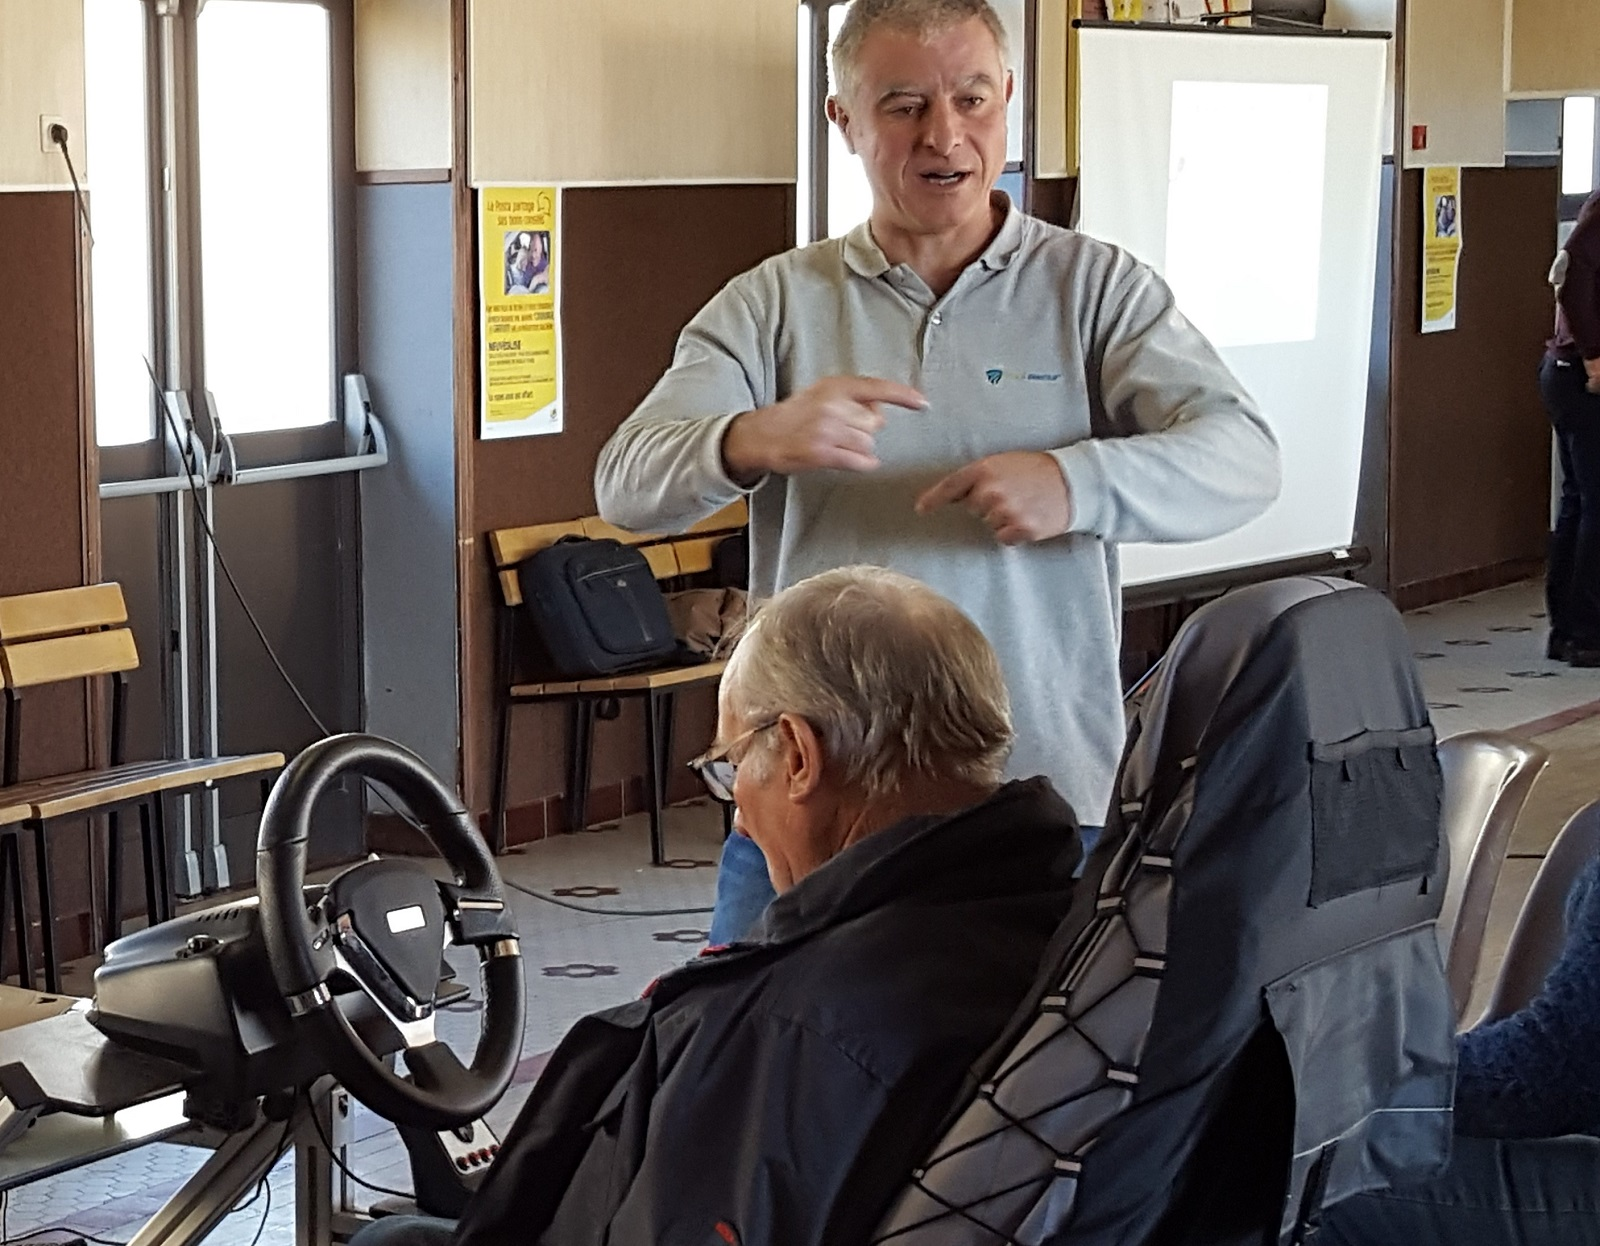 Senior citizens take part in road safety workshops in Cantal